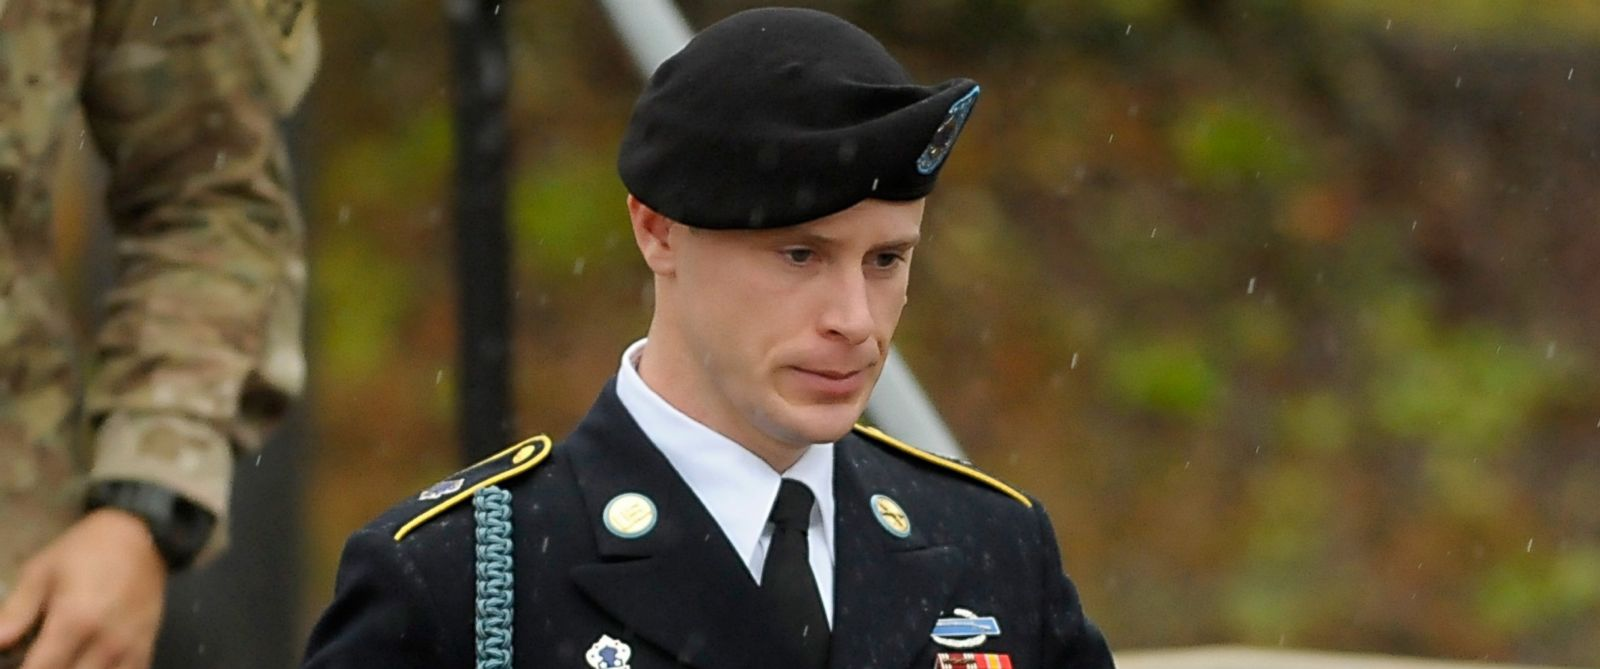 PHOTO: Army Sgt. Bowe Bergdahl leaves a military courthouse, Dec. 22, 2015, in Ft. Bragg, N.C.